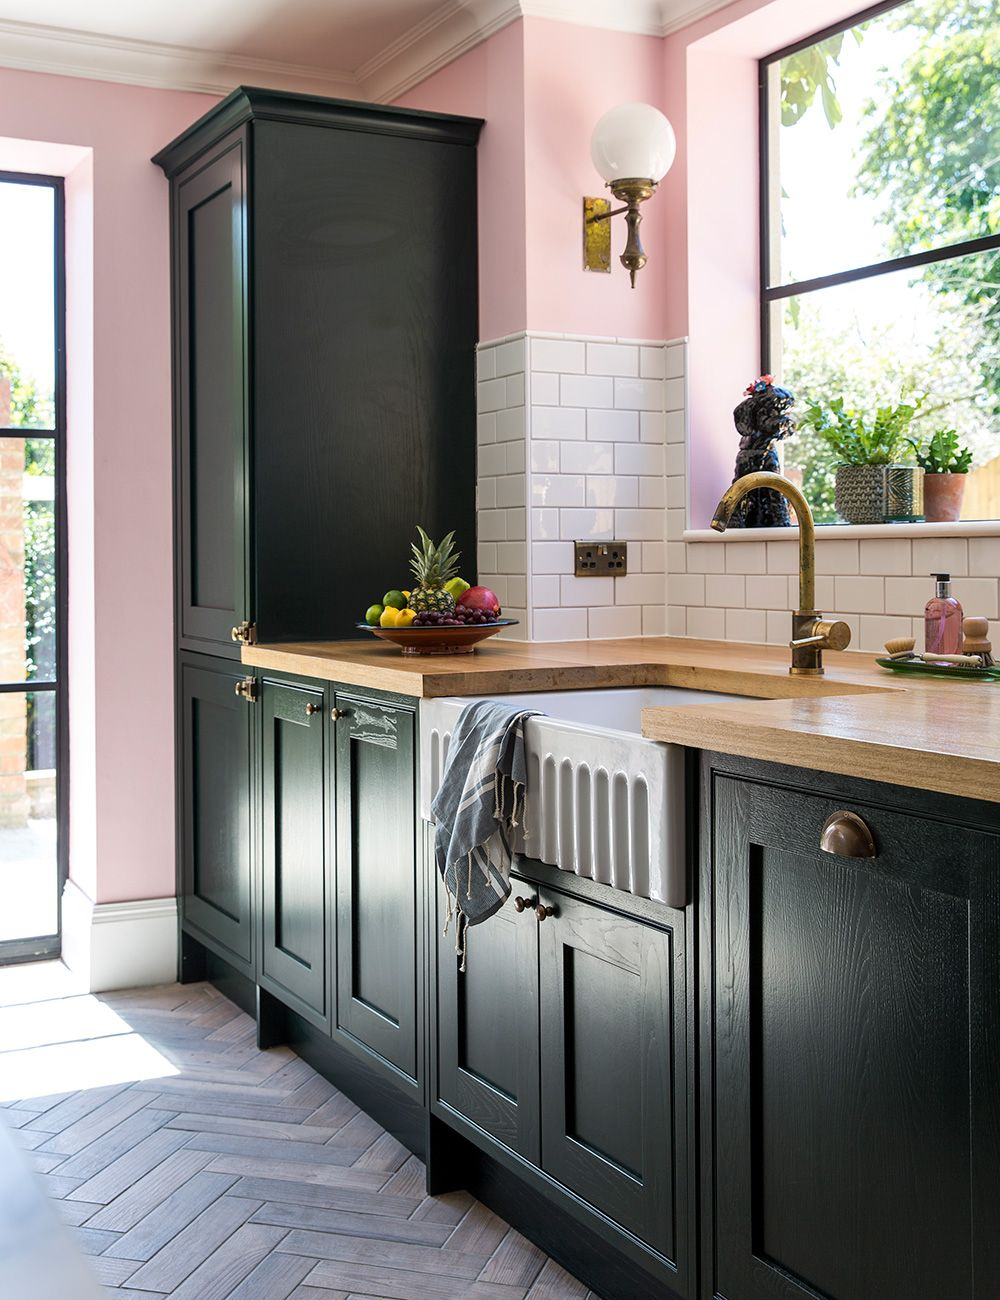 How to paint kitchen cabinets   give your units a whole new look - Pink kitchen walls, Kitchen paint, Kitchen marble, Kitchen cabinets, Kitchen units, Painting kitchen cabinets - Refitting a kitchen can be costly and a faff  So if you're happy with the layout and your units are sound, read our guide to how to paint kitchen cabinets